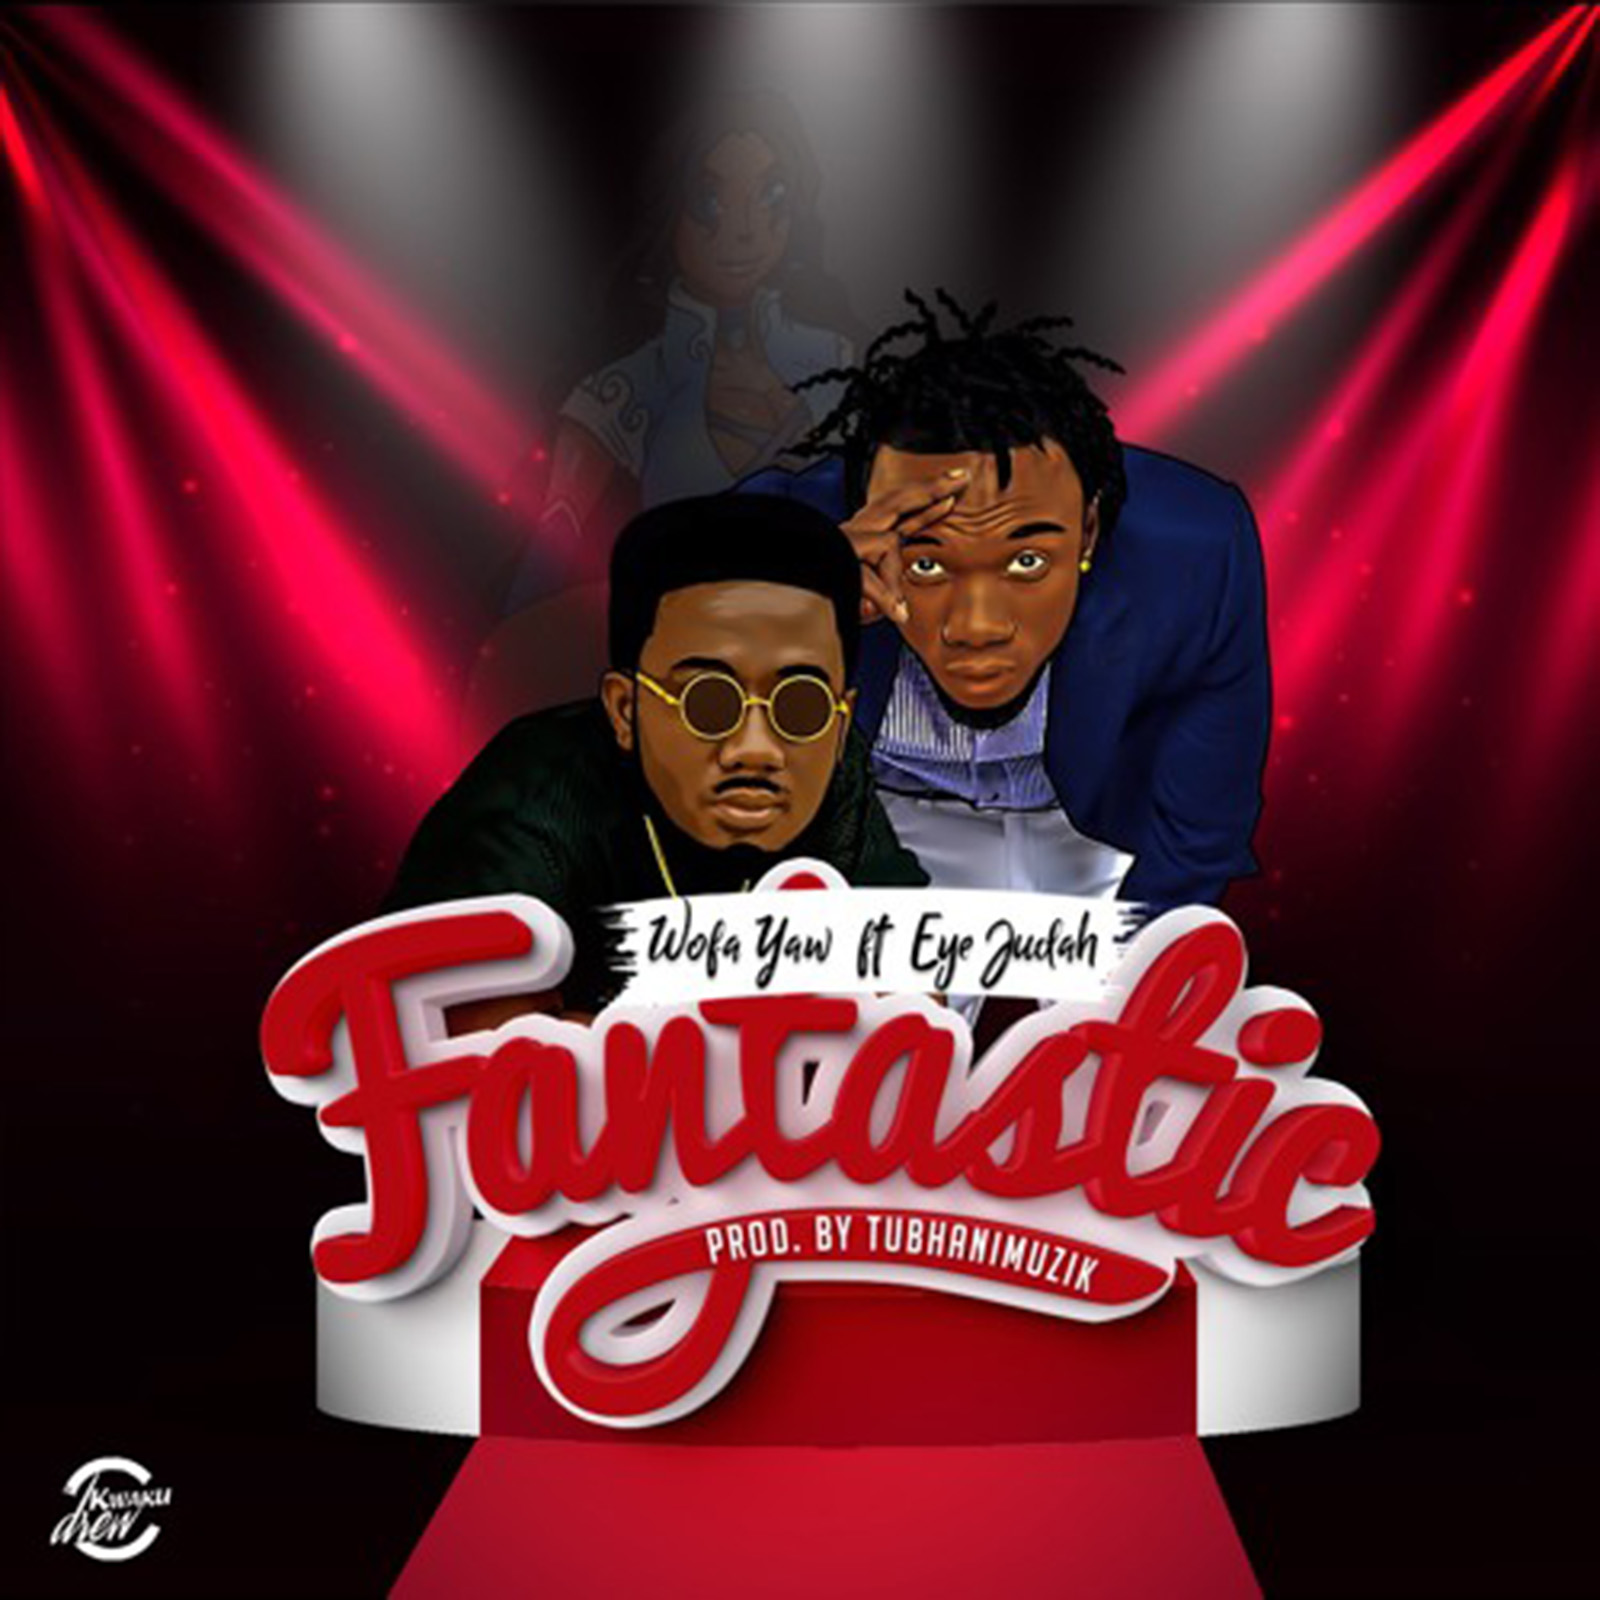 Fantastic by Wofa Yaw feat. Eye Judah